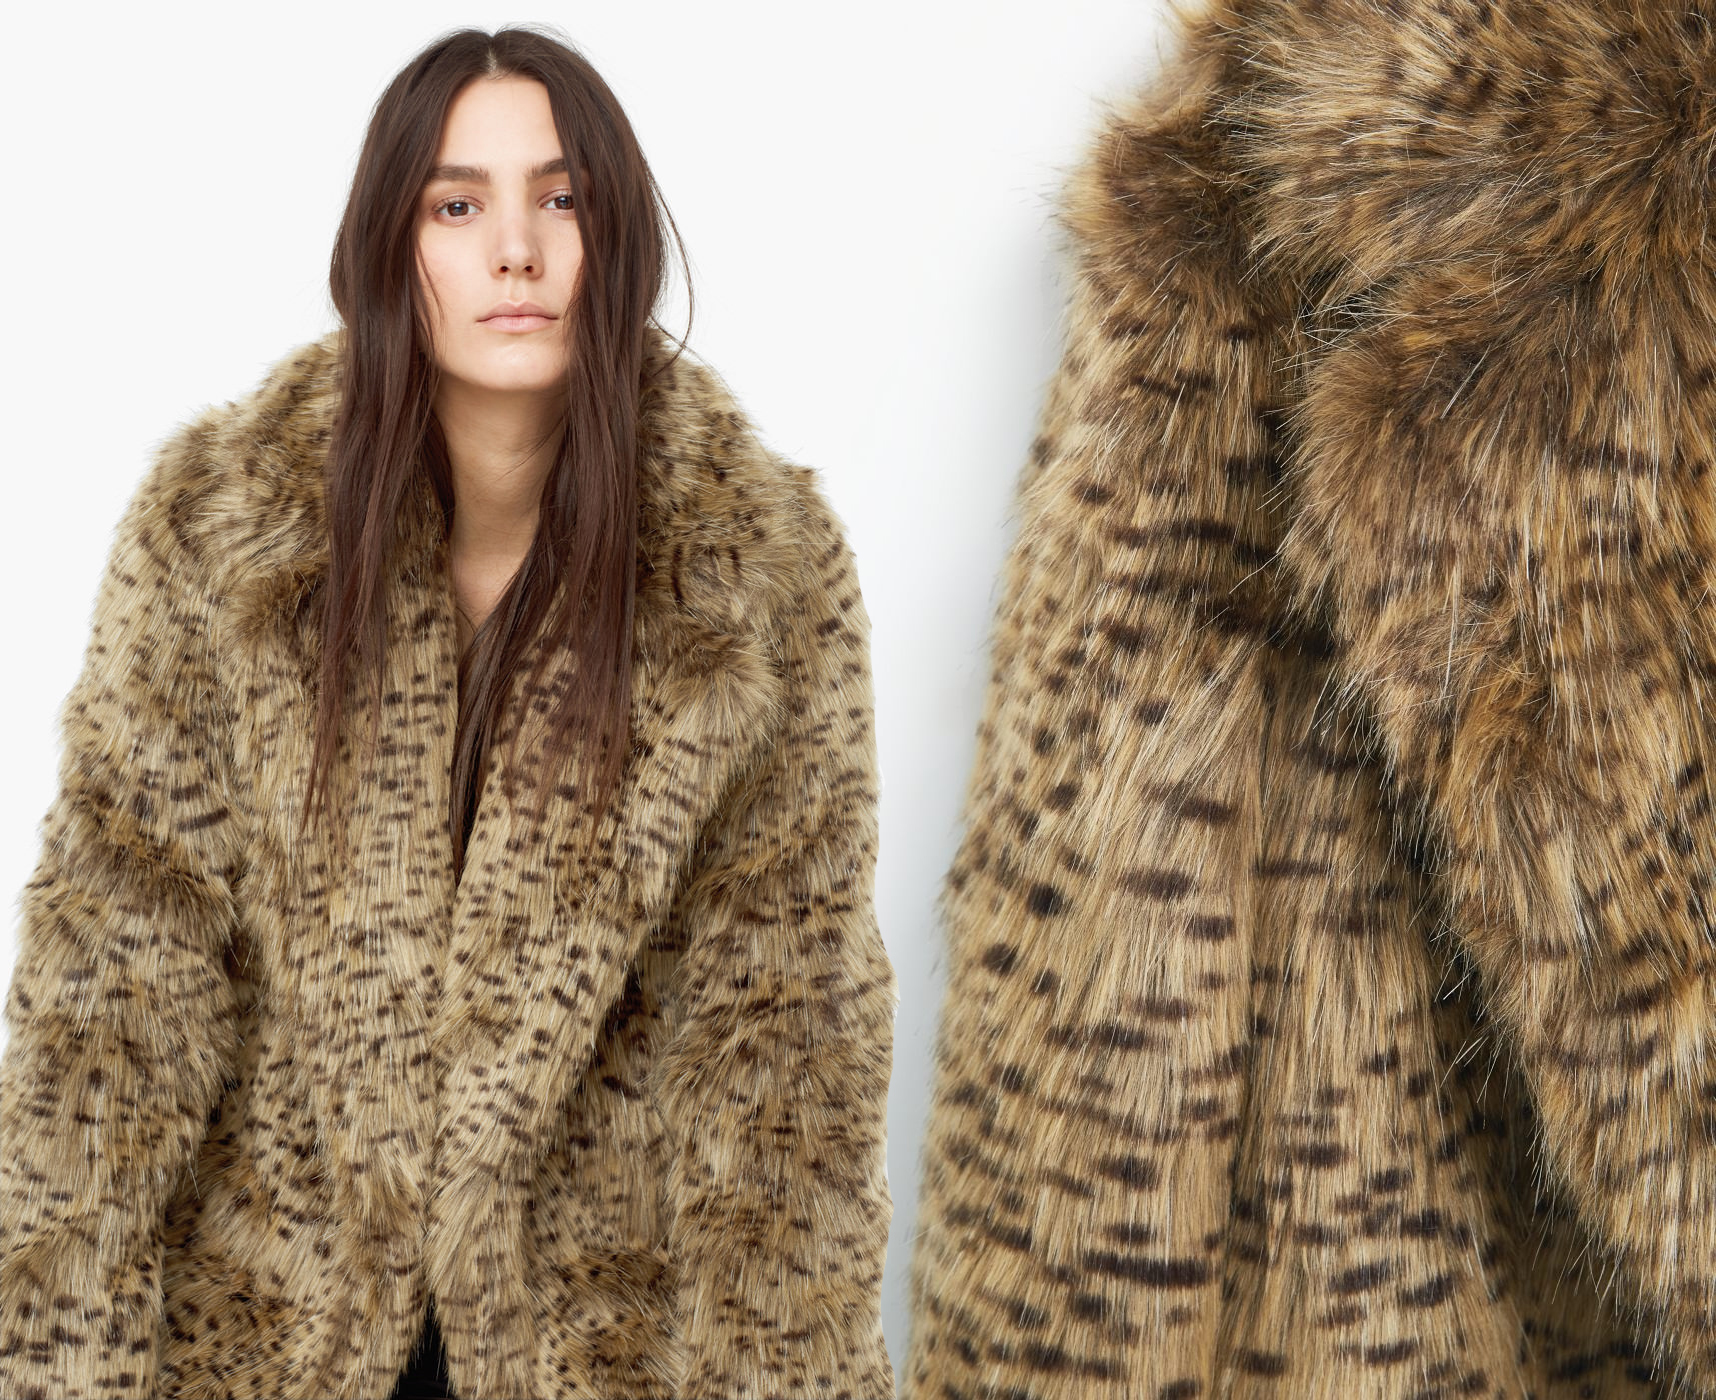 Click here to find out about the Leopard Faux Fur Coat from Boohoo, part of our latest Faux Fur Coats collection ready to shop online today!